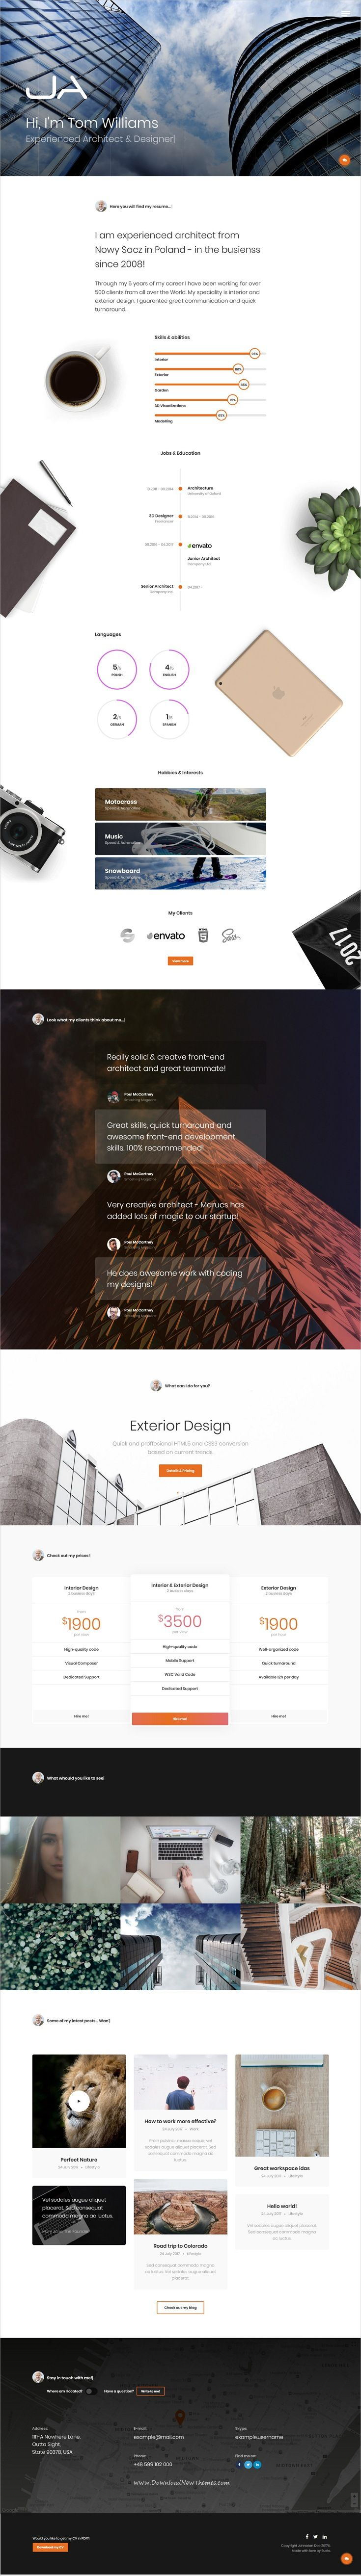 Ja is clean and modern design #bootstrap template for #architect #engineers #resume #CV and portfolio showcase website with 40+ creative homepage layouts download now..